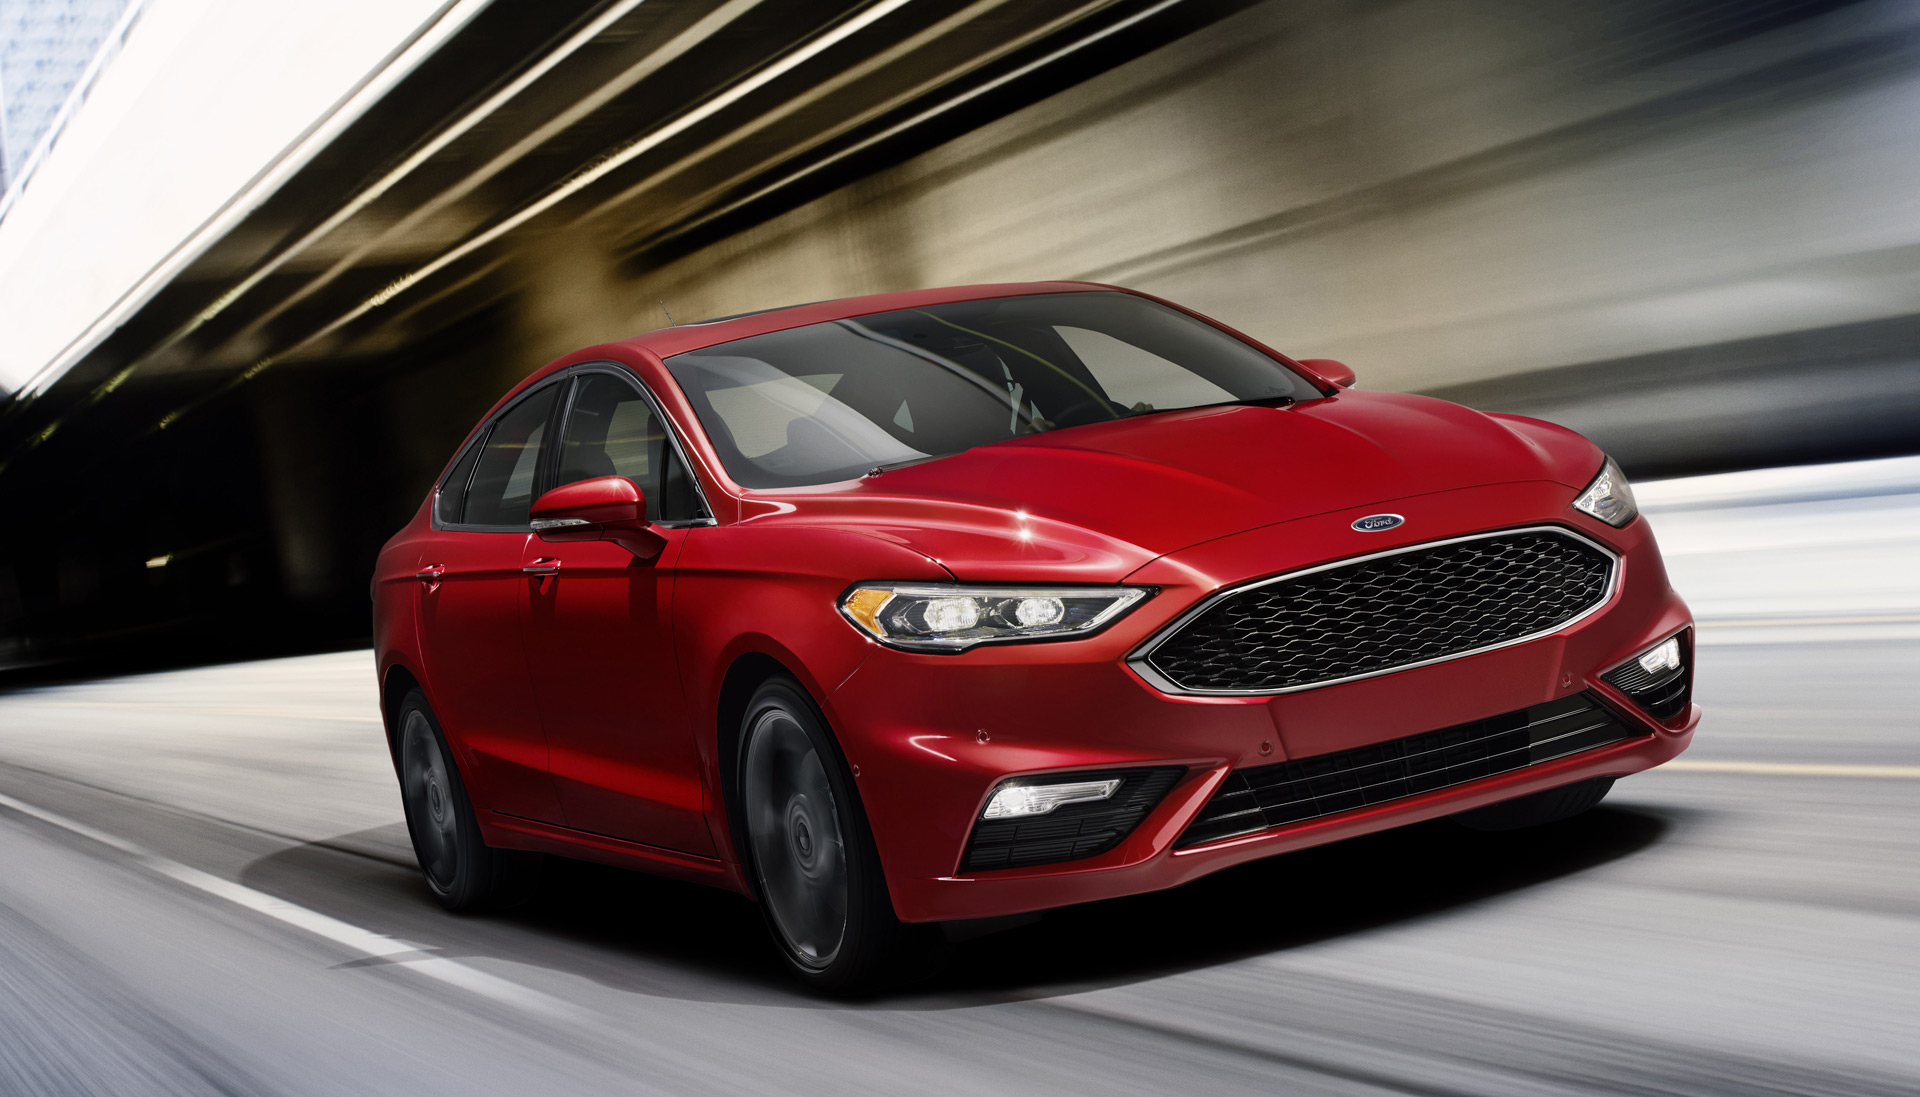 2017 ford fusion v6 sport gets drive modes selector with adjustment of 7 dynamic settings. Black Bedroom Furniture Sets. Home Design Ideas